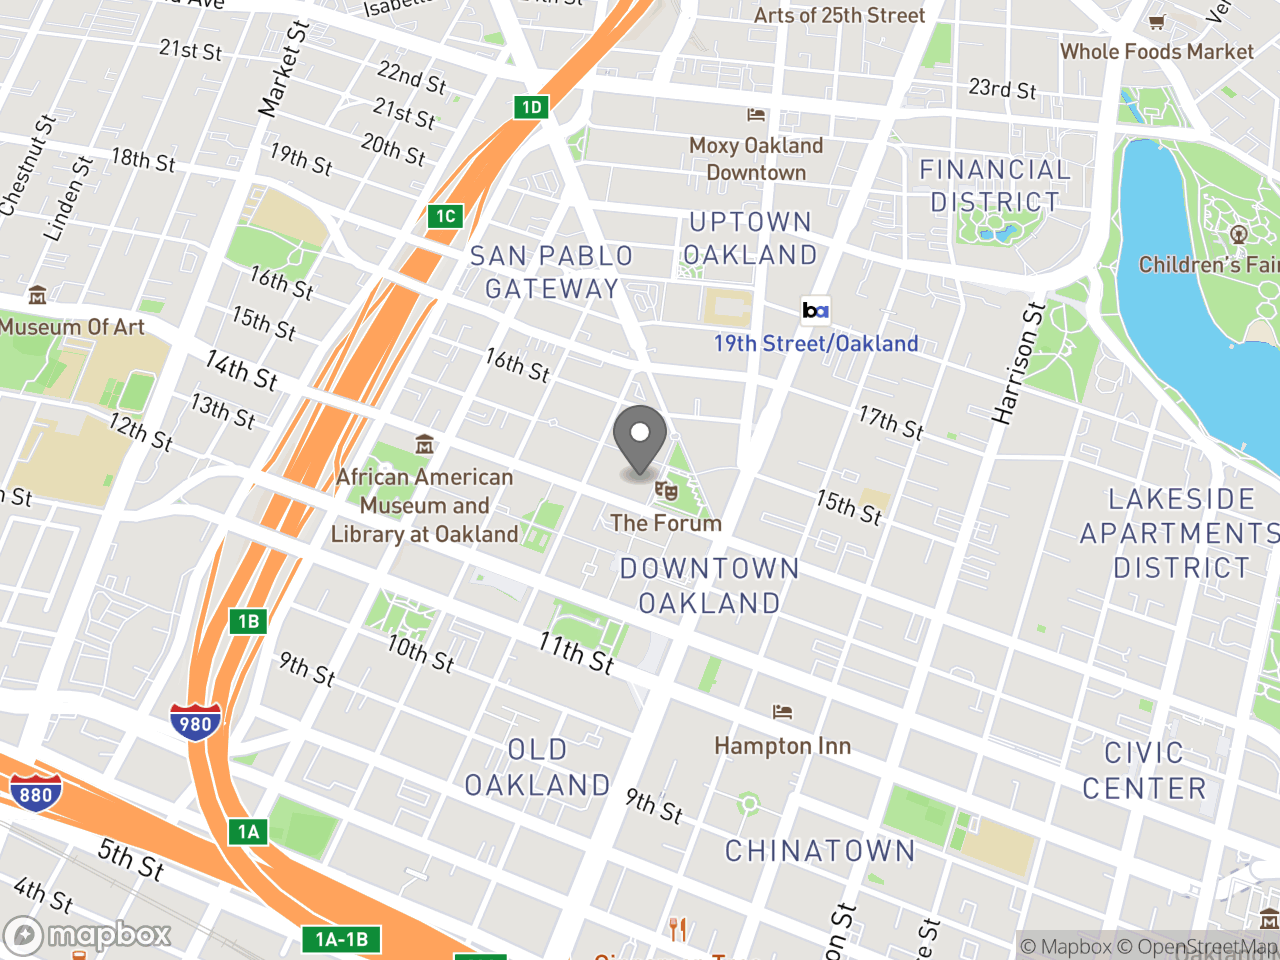 Map location for Cannabis Permits, located at 1 Frank H. Ogawa Plaza in Oakland, CA 94612